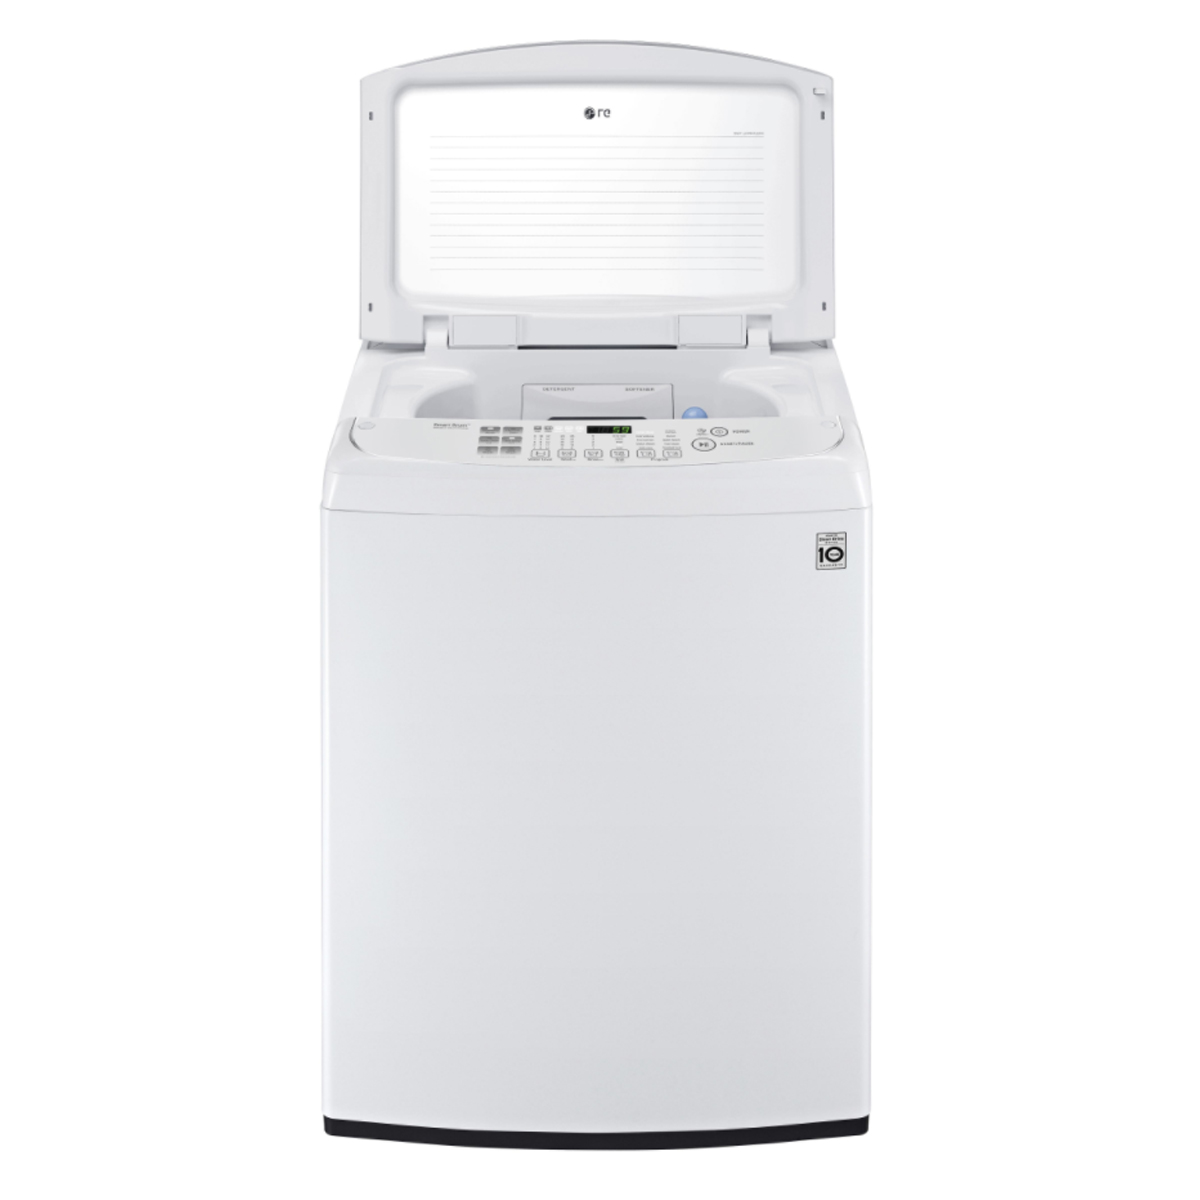 LG WTG9032WF 9kg Top Load Washing Machine 136645